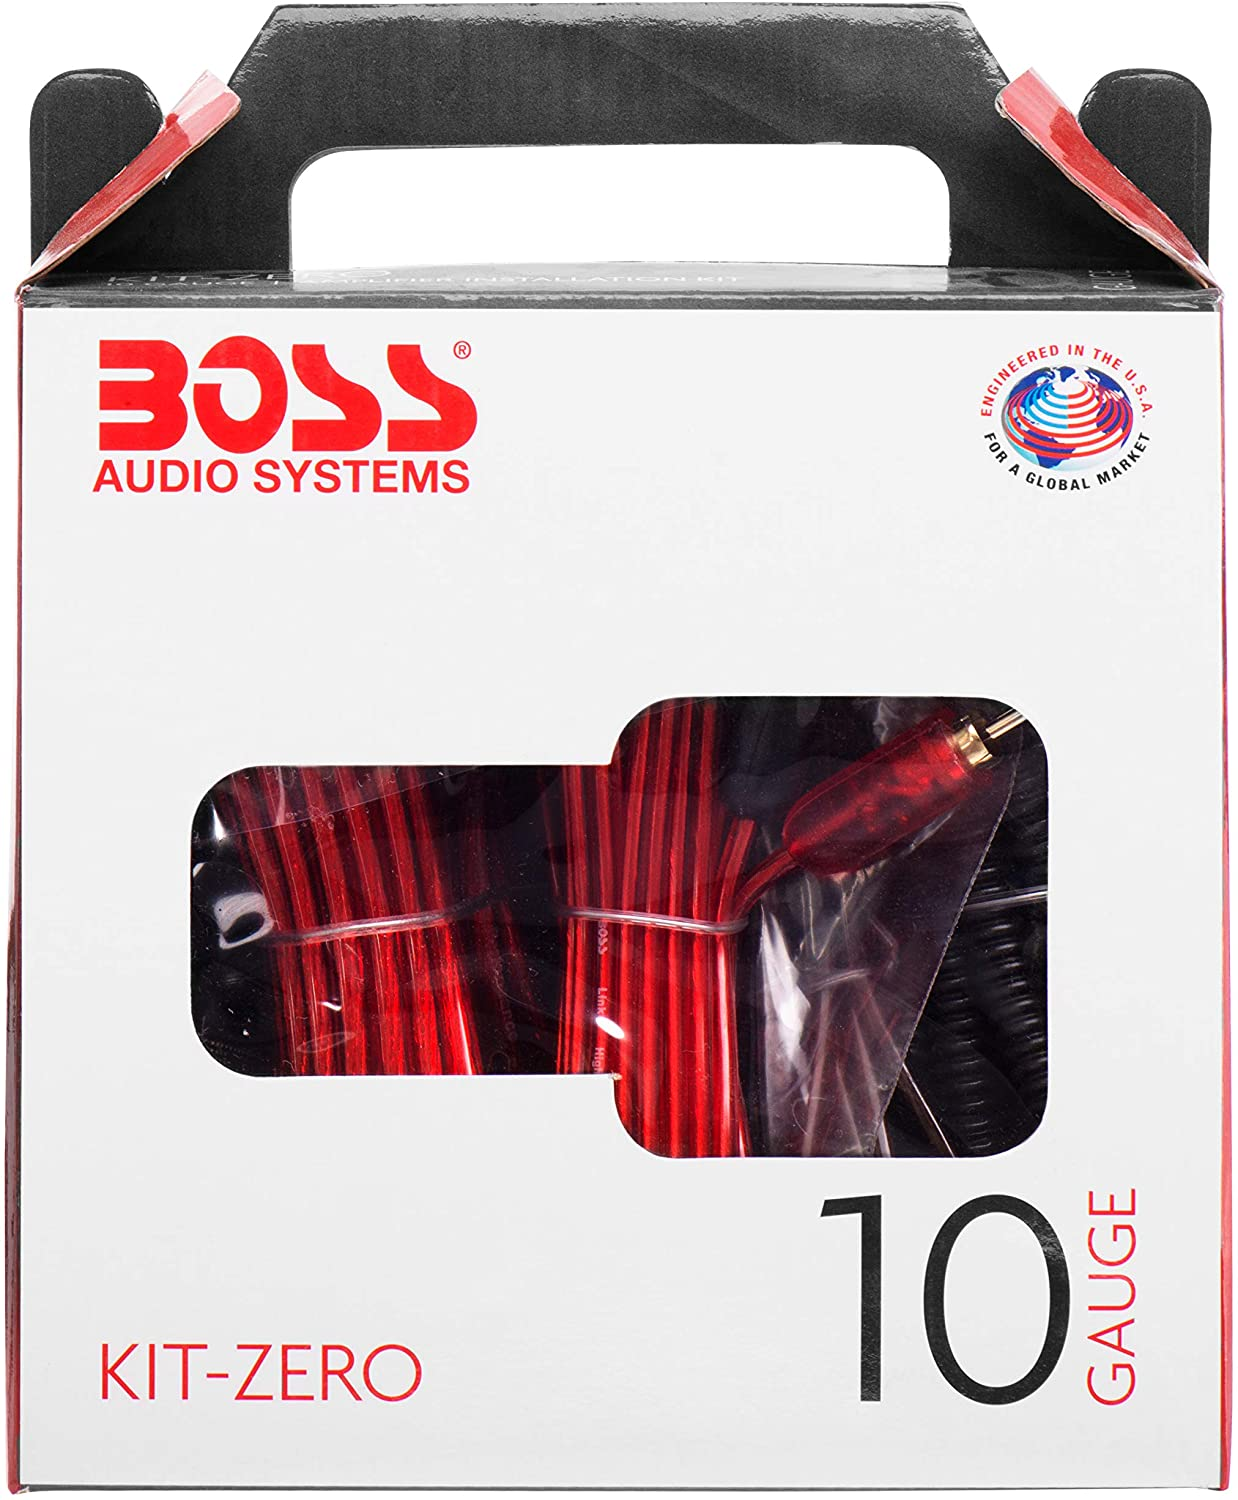 BOSS Audio Systems KIT-ZERO 10 Gauge Wiring Installation Kit for Car Amplifiers - A Car Amplifier Wiring Kit Helps You Make Connections and Brings Power to Your Radio, Subwoofers and Speakers 81wLDlz0RBL